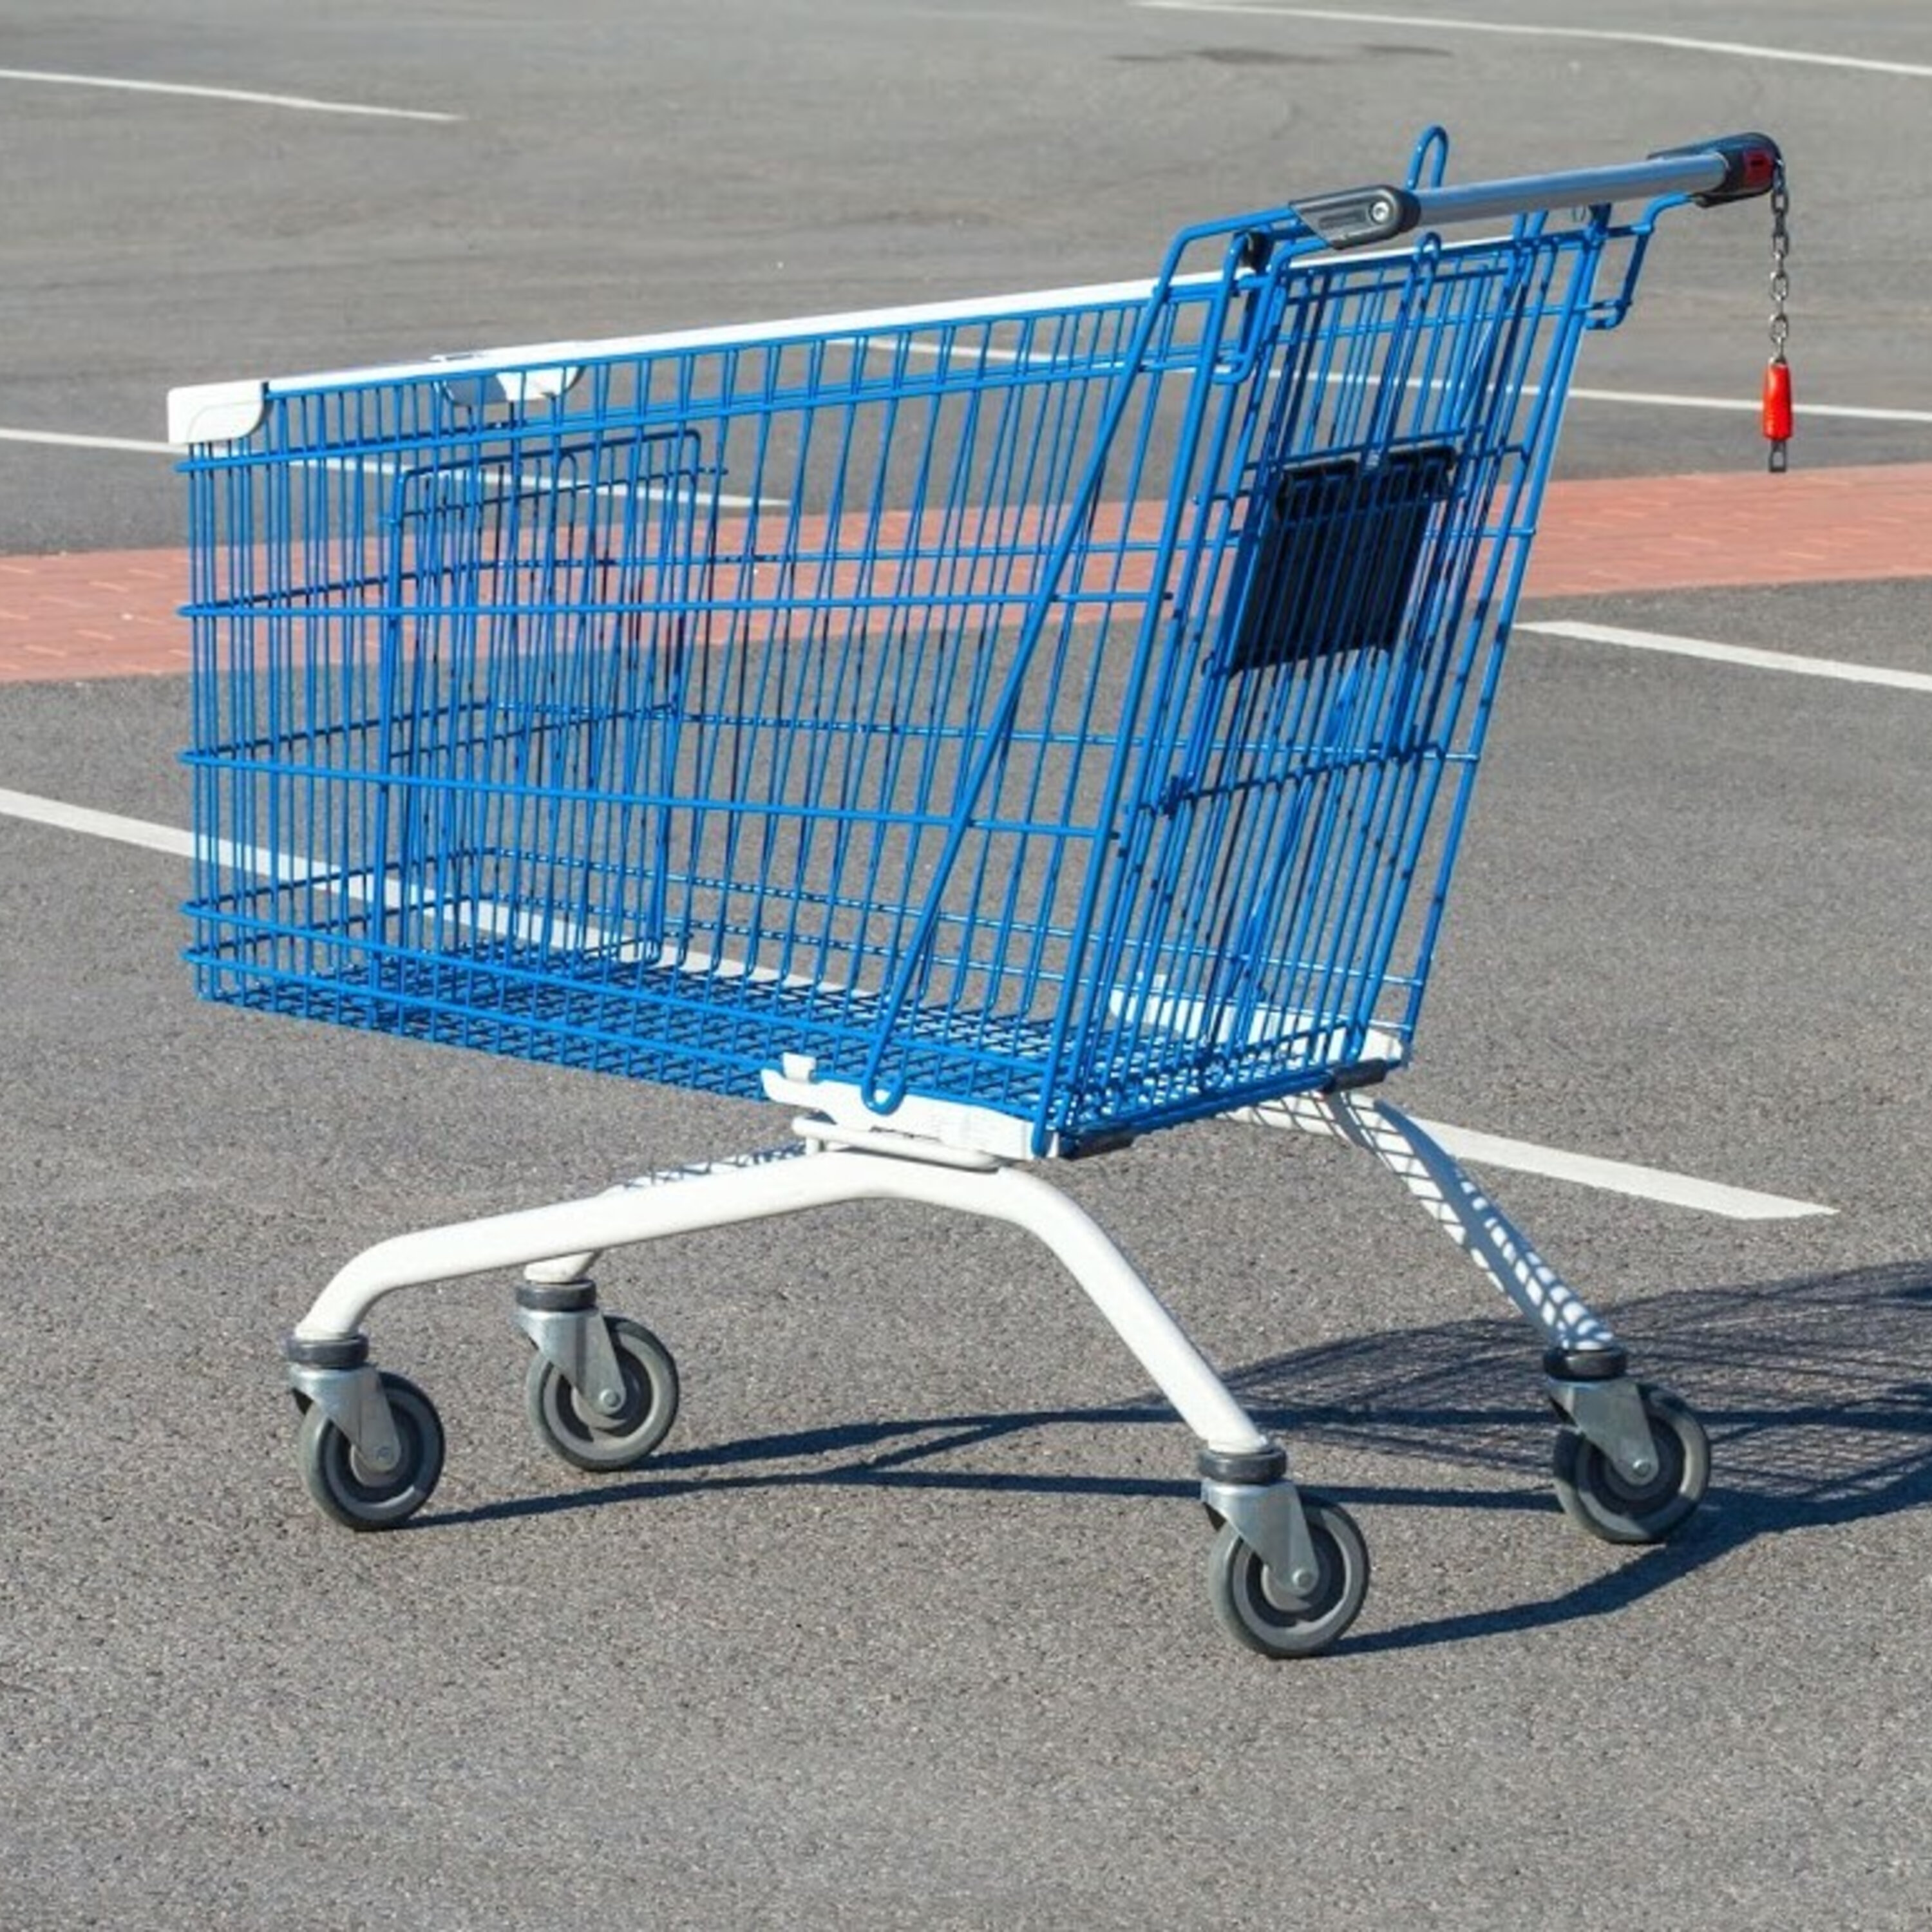 Legalizing Prostitution And The Shopping Cart Personality Test